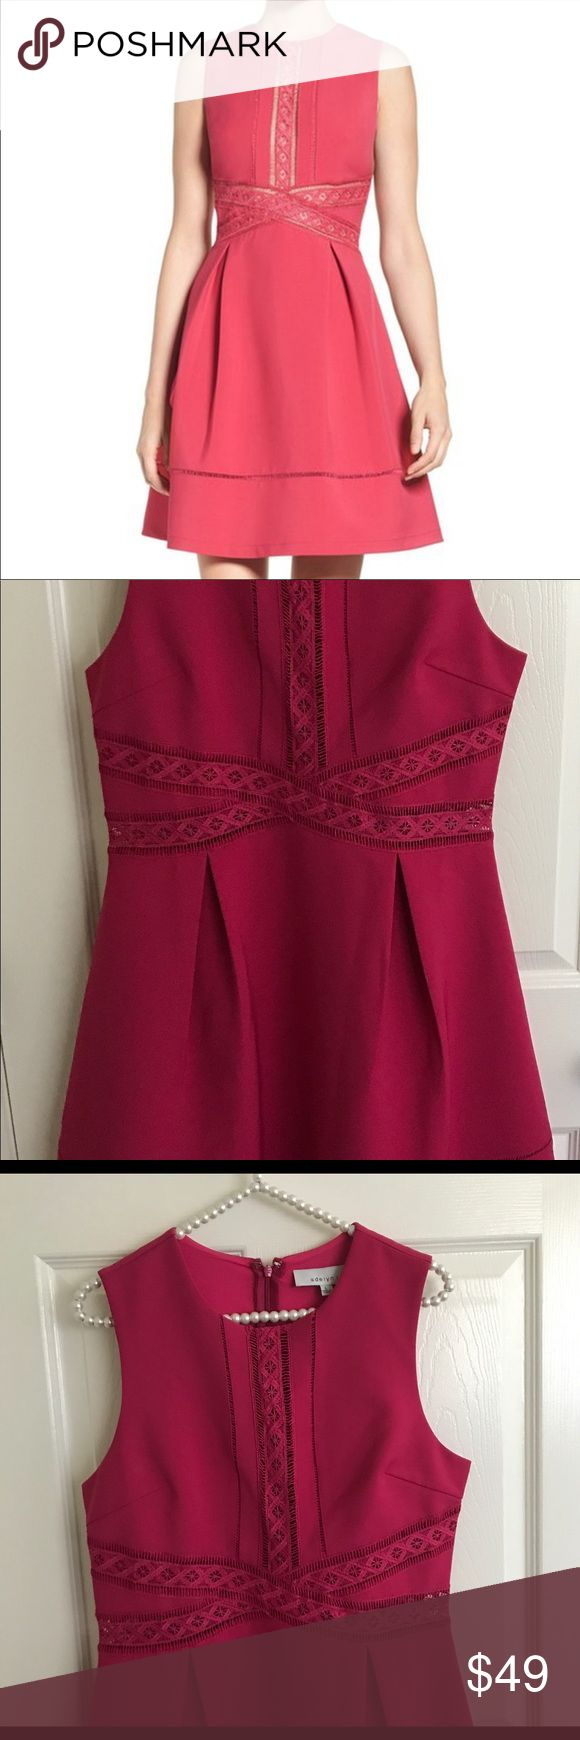 "Fuchsias Adelyn Rae Dress NWOT! No trade No lowball. Armpit to Armpit 9.5""in waist 1/6""in length 3/6in Adelyn Rae Dresses"